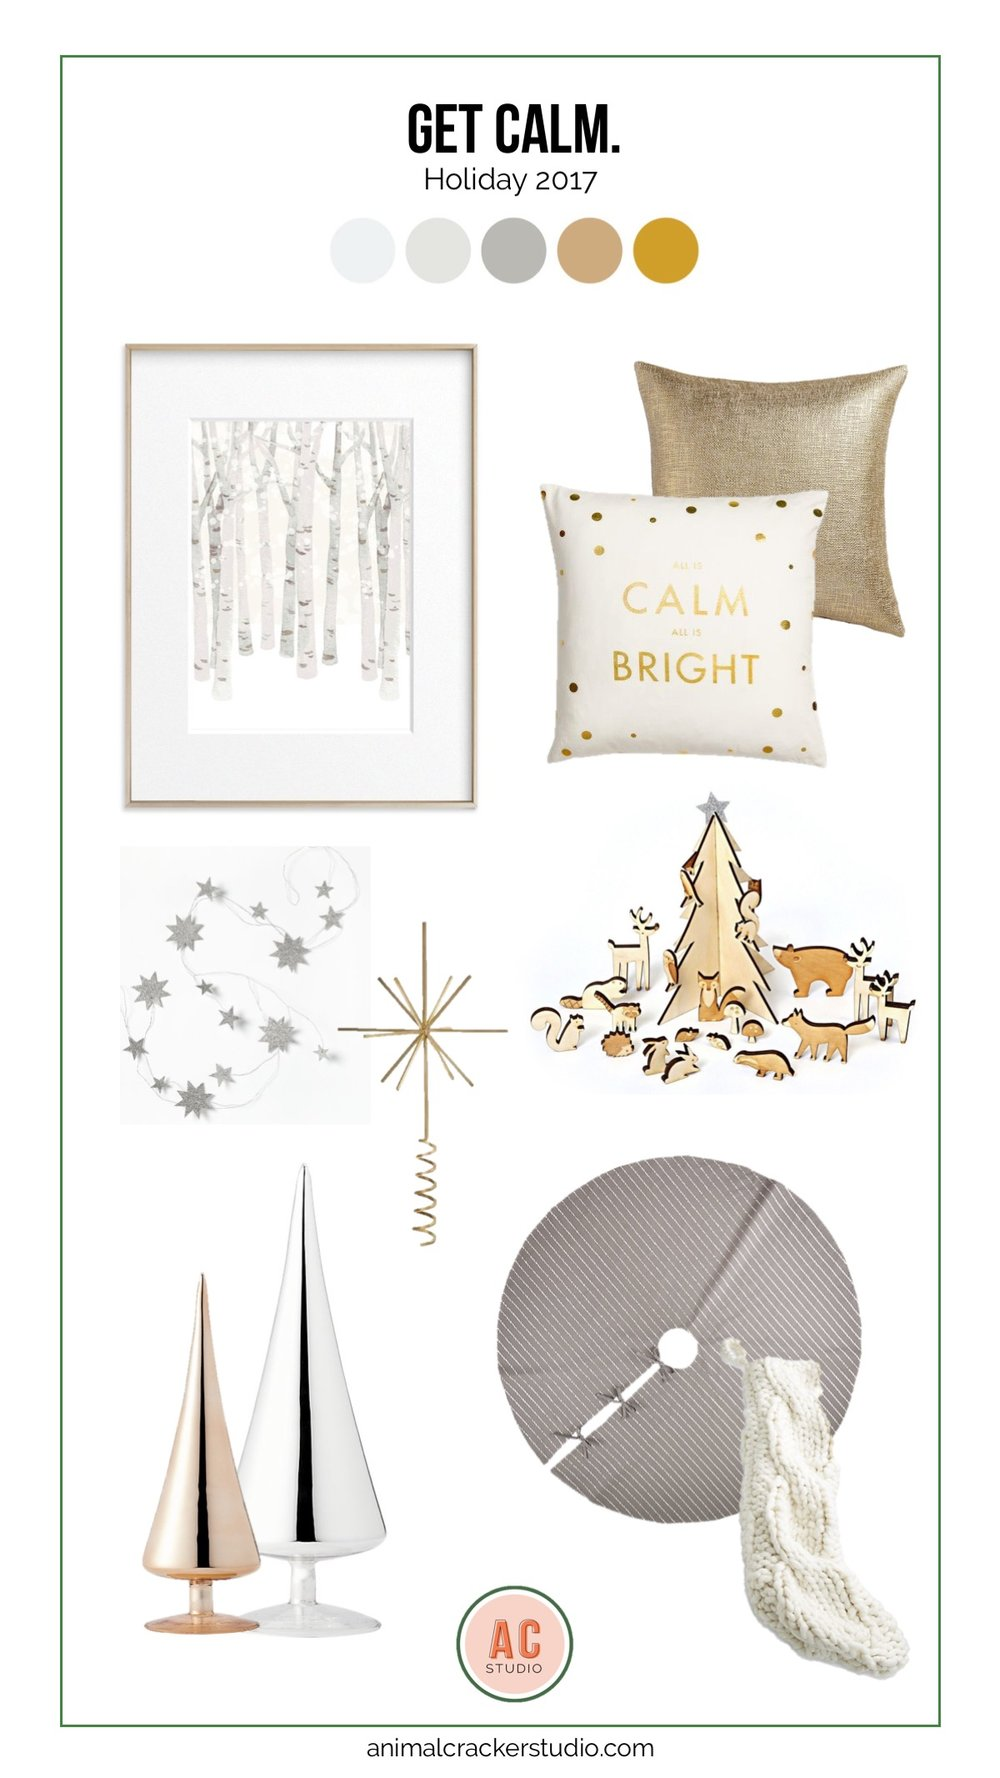 Sources (ditto the comment about affiliate links above): Woods print, calm and bright pillow, glitterati pillow, advent calendar, tree skirt, knit stocking, glass trees, tree topper, star garland.